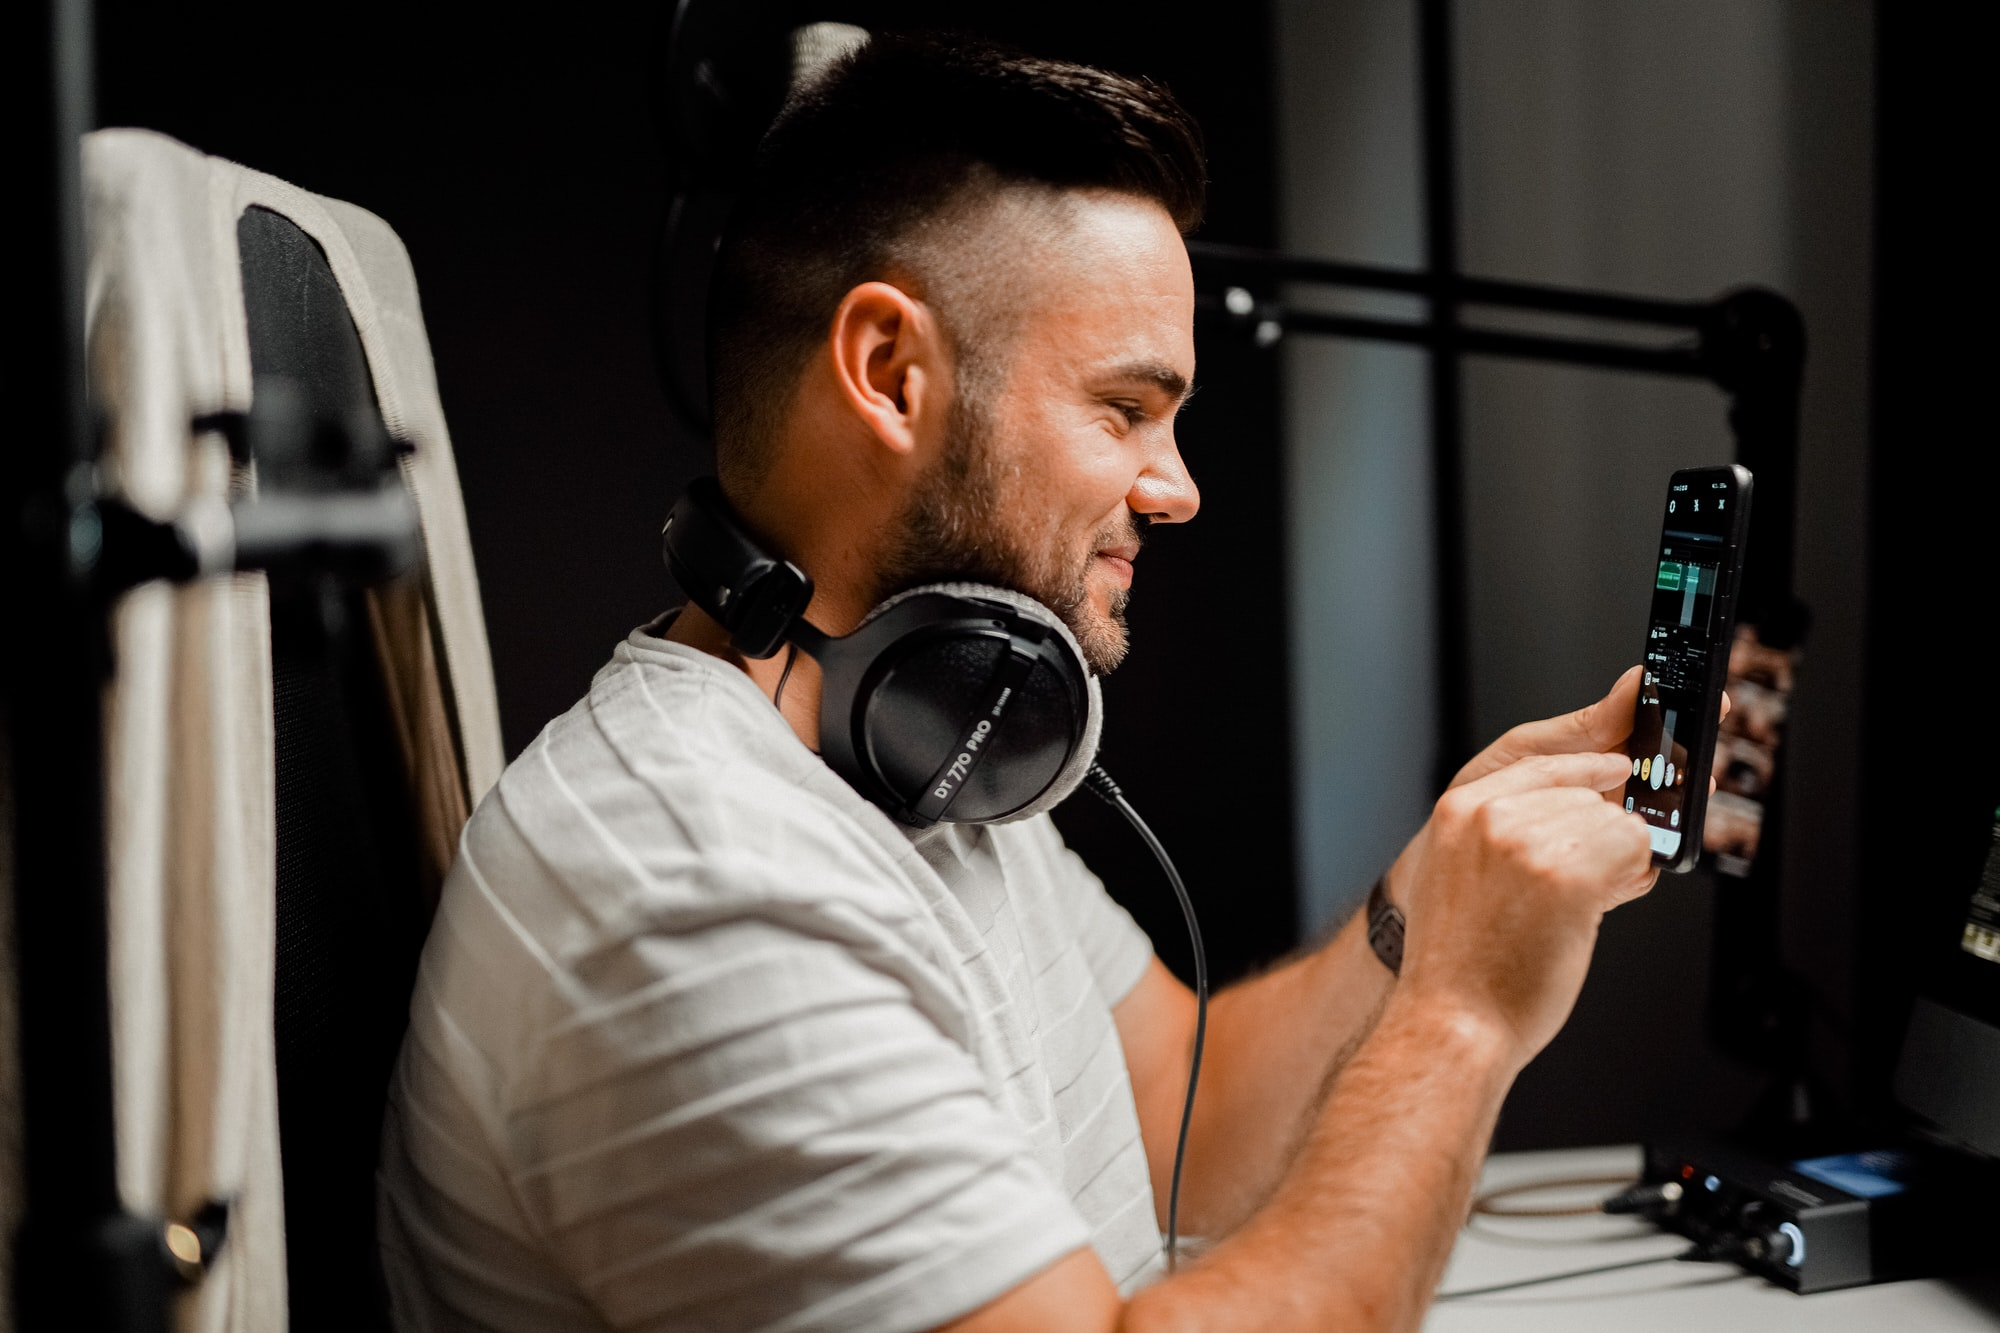 Man recording an instagram story with headphones in front of a smartphone with podcast gear like headphones, an interface and a microphone stand.